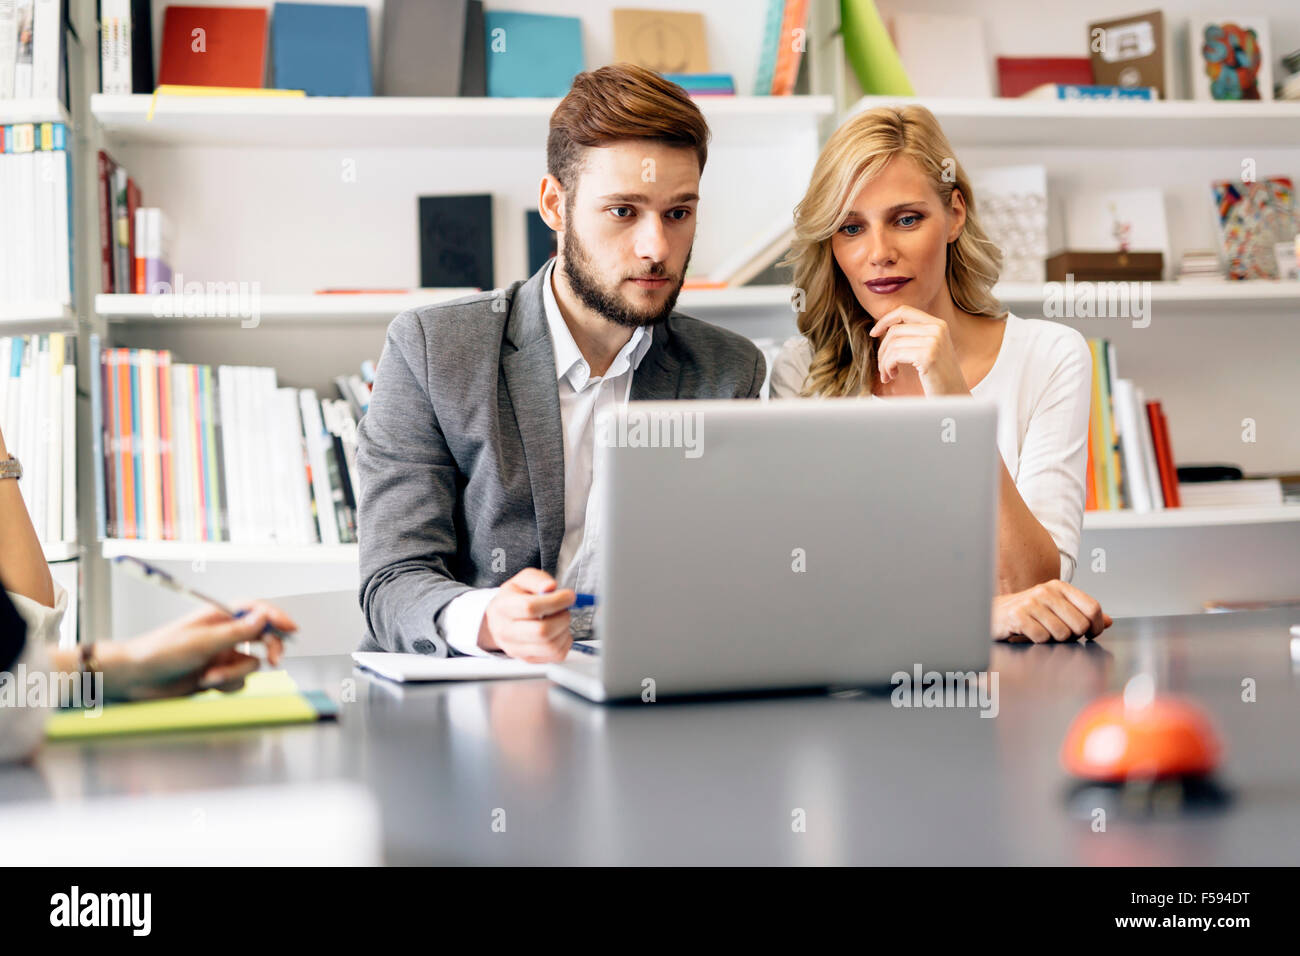 Two colleagues trying to solve problem on laptop - Stock Image